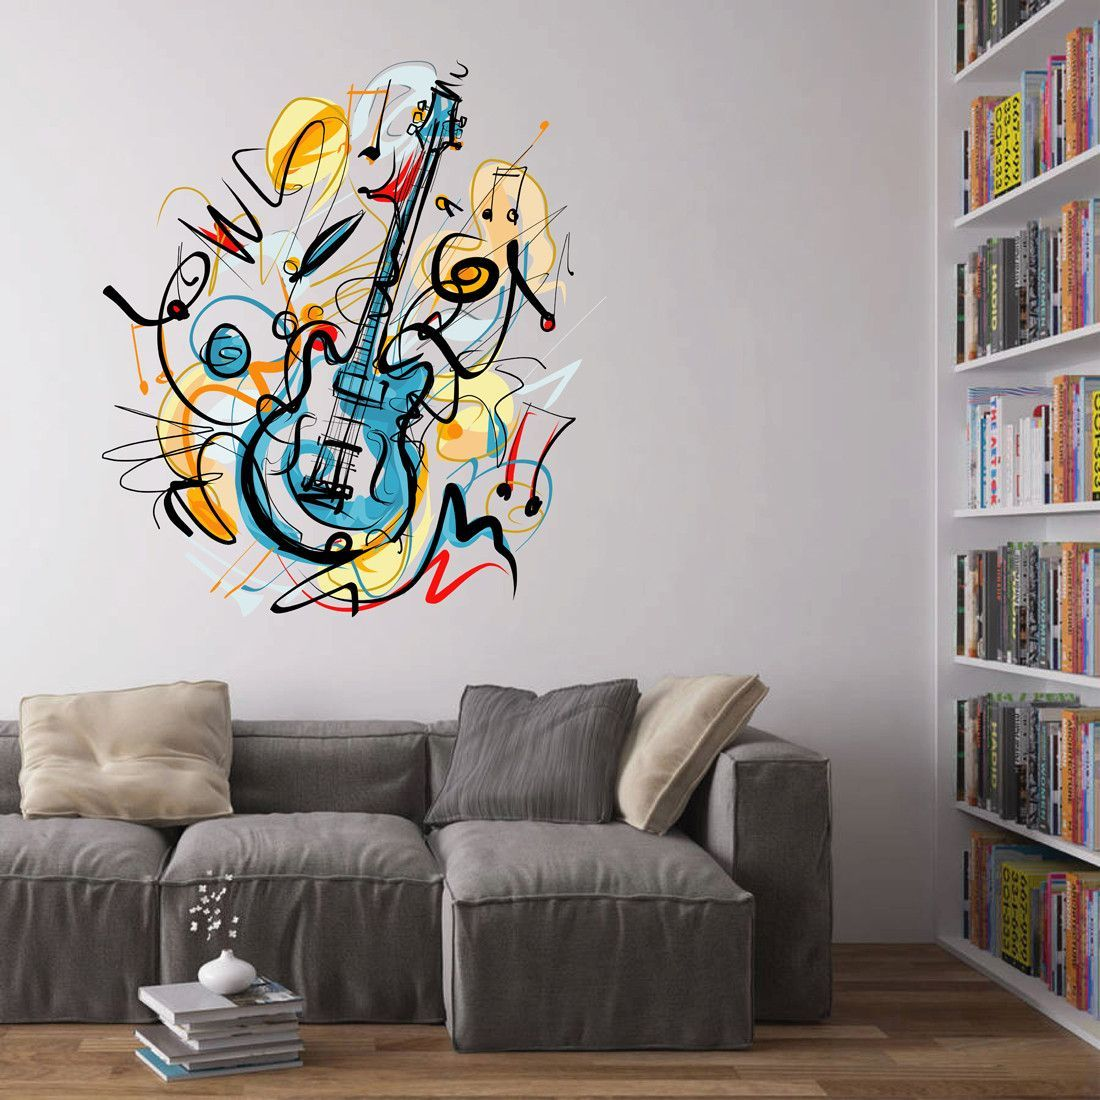 Wall Decals Stickers Are One Of The Great Decorative Innovations Of Recent  Years. Decals Stickers Are A An Easy And Inexpensive Way To Decorate Your  Walls. Awesome Ideas